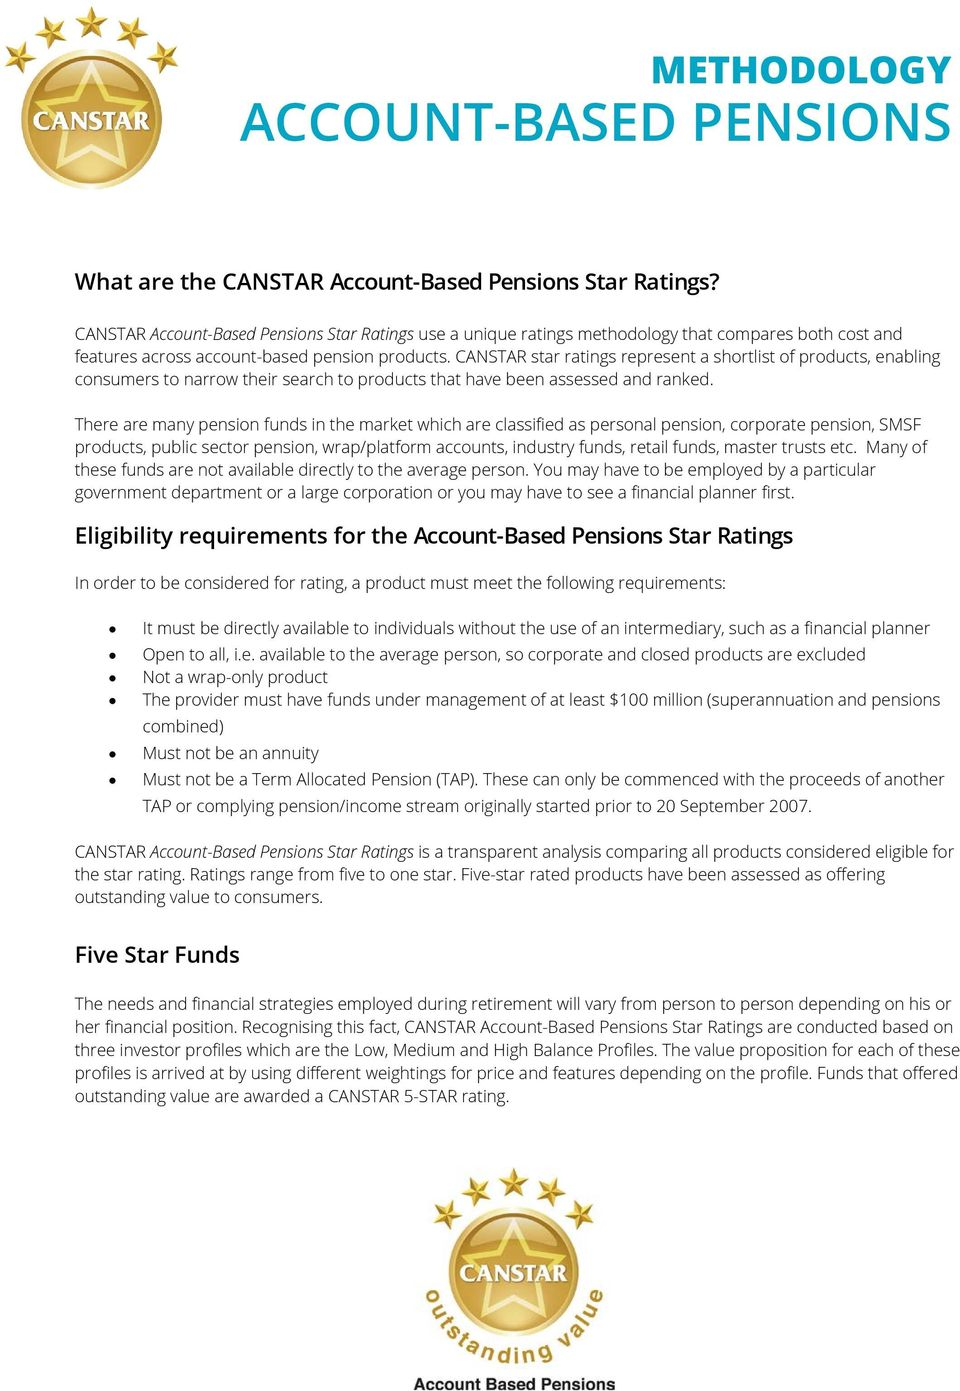 CANSTAR star ratings represent a shortlist of products, enabling consumers to narrow their search to products that have been assessed and ranked.